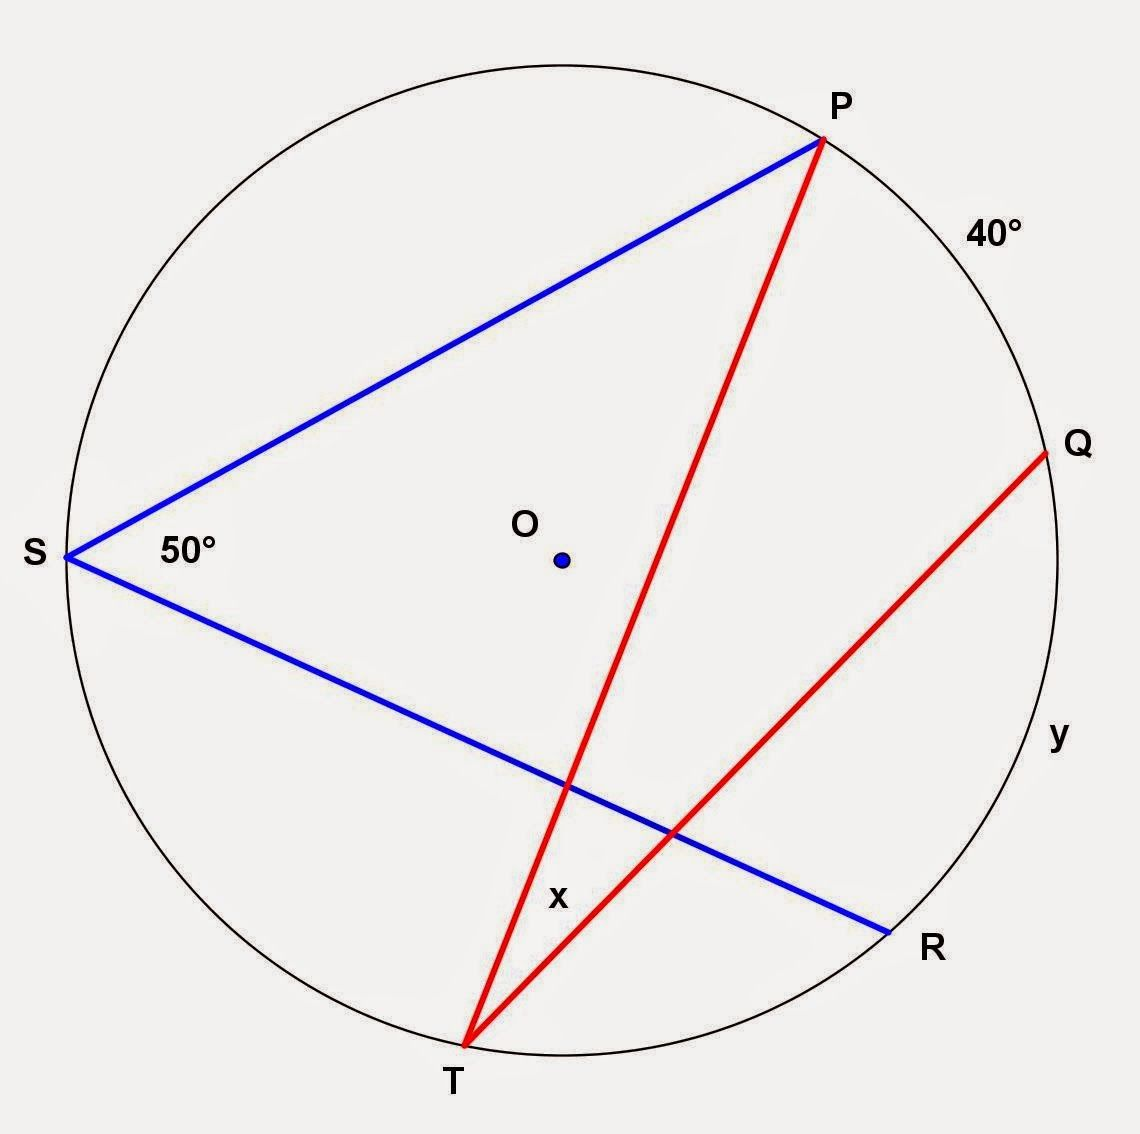 Circle And Inscribed Angle Problems Circle Theorems Plane Geometry Circle